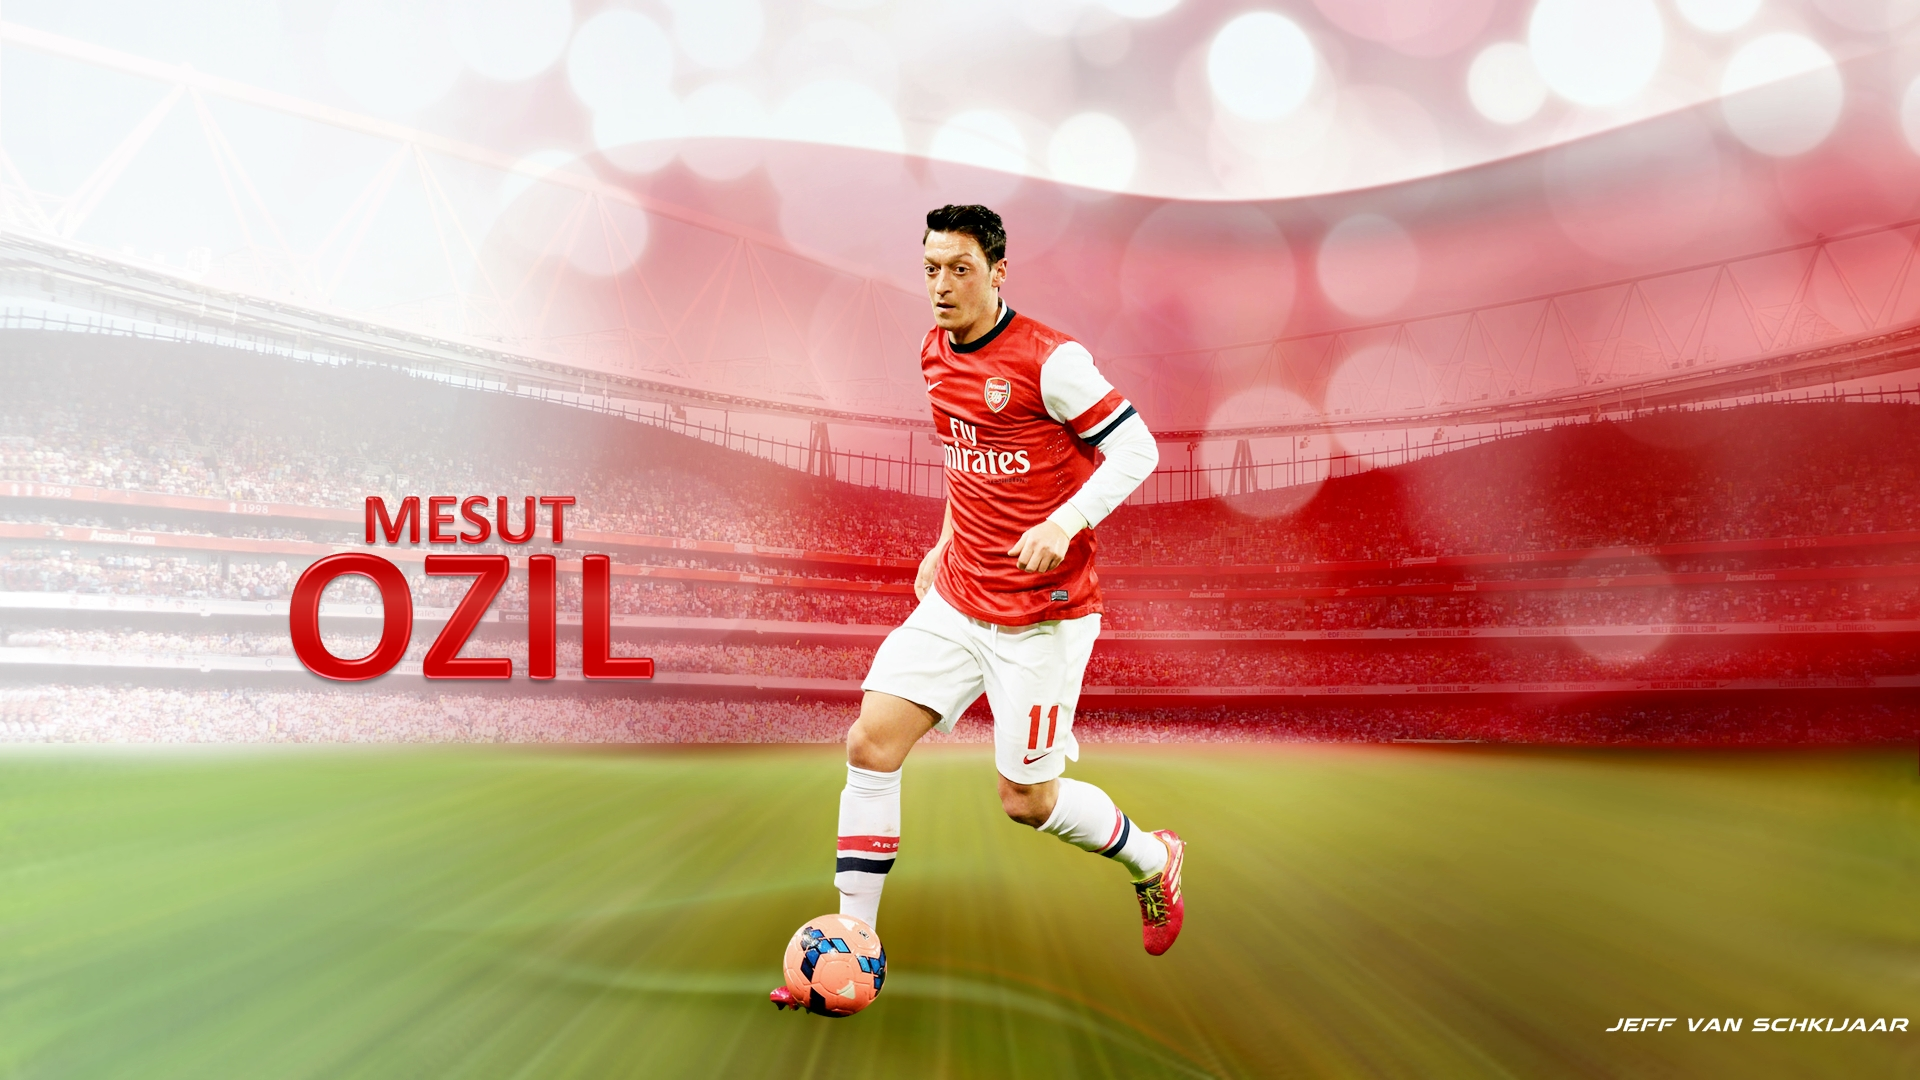 Mesut Ozil Wallpaper Awesome